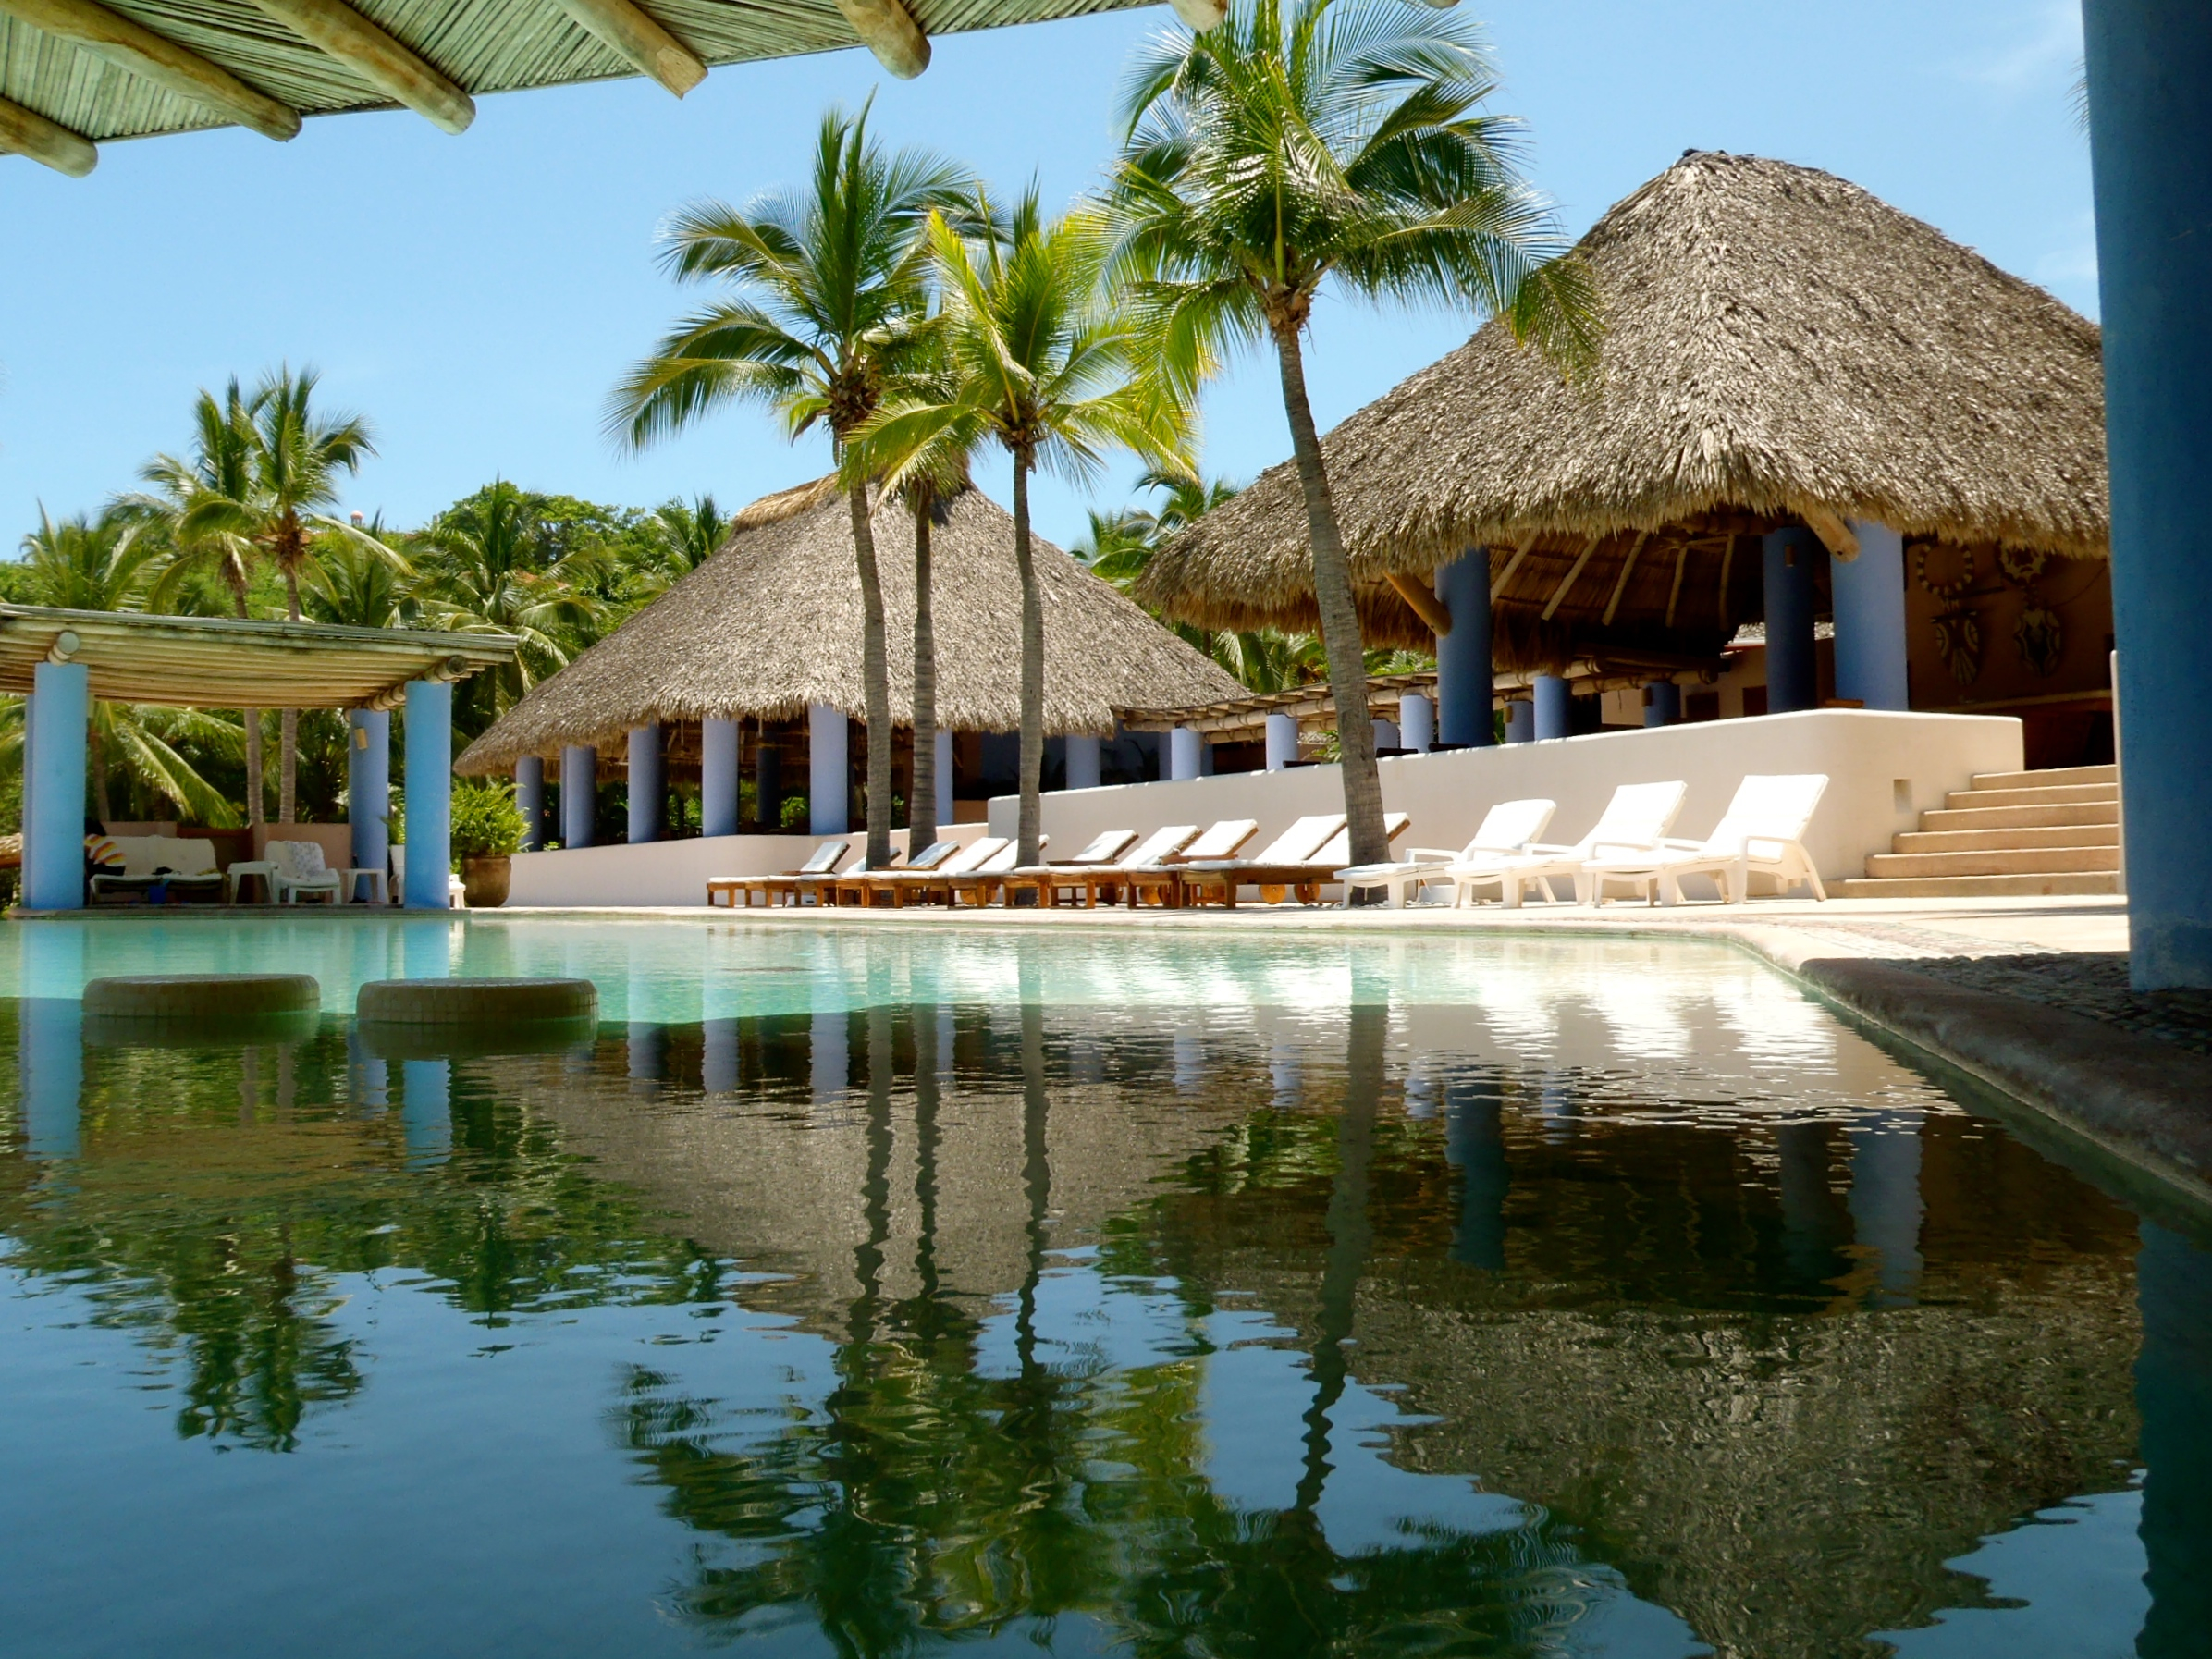 Don Rodrigo offers a restaurant, bar and pool for both adults and children right on the beach.